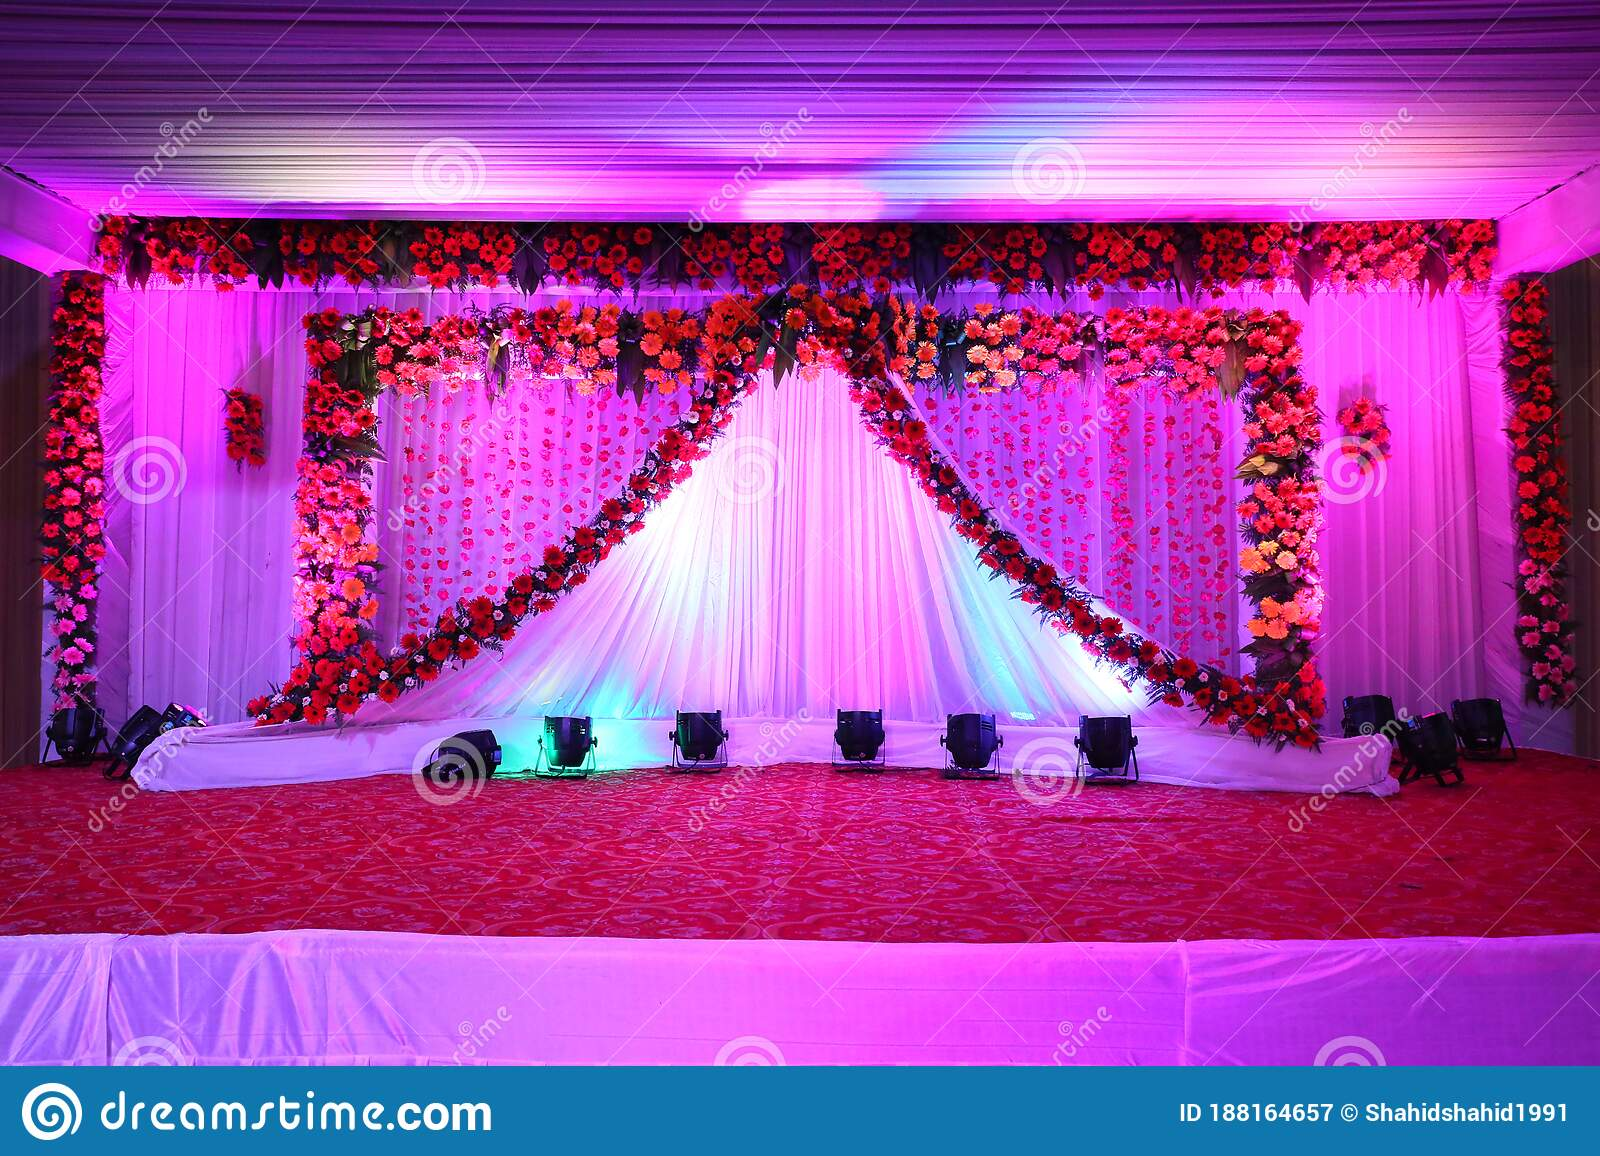 Wedding Stage Decoration In Wedding Hall For Party Stock Image - Image of  decor, love: 188164657